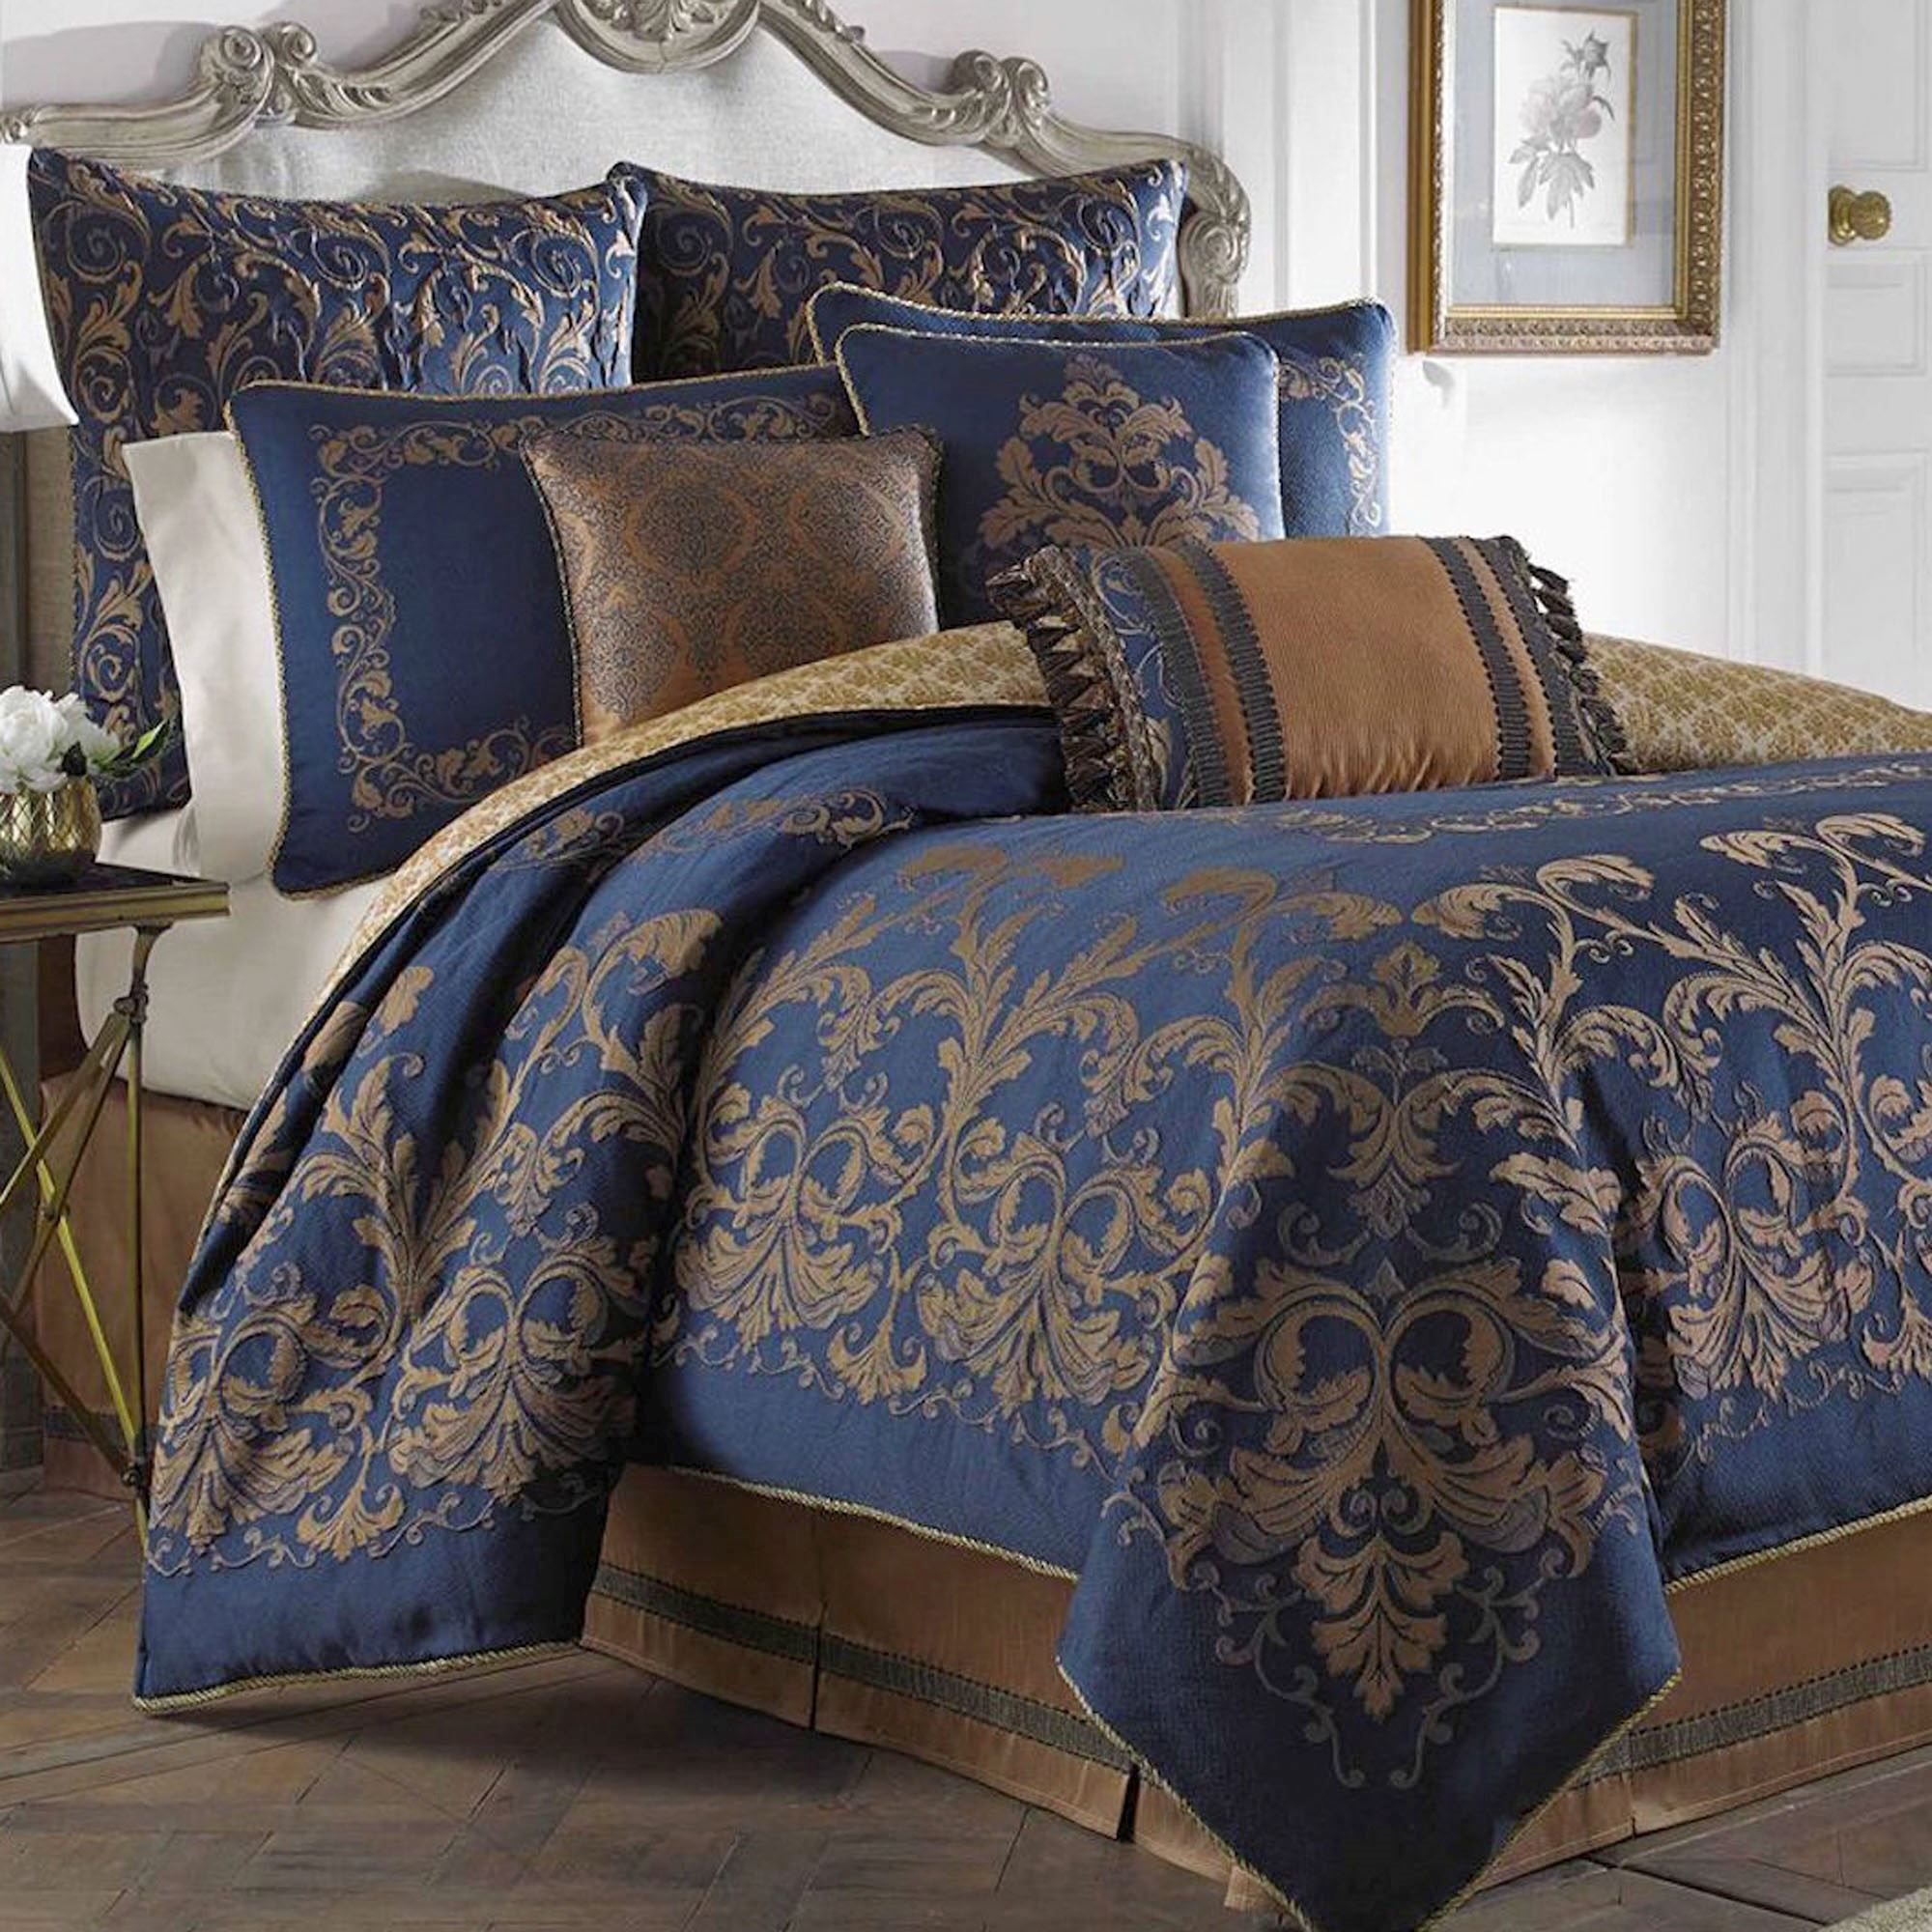 decoration re wayfair king blue bedding sale and captivating for queen piece beyond comforters sets anouk ideas extraordinary comforter bath taupe stunning bed jacquard bedroom